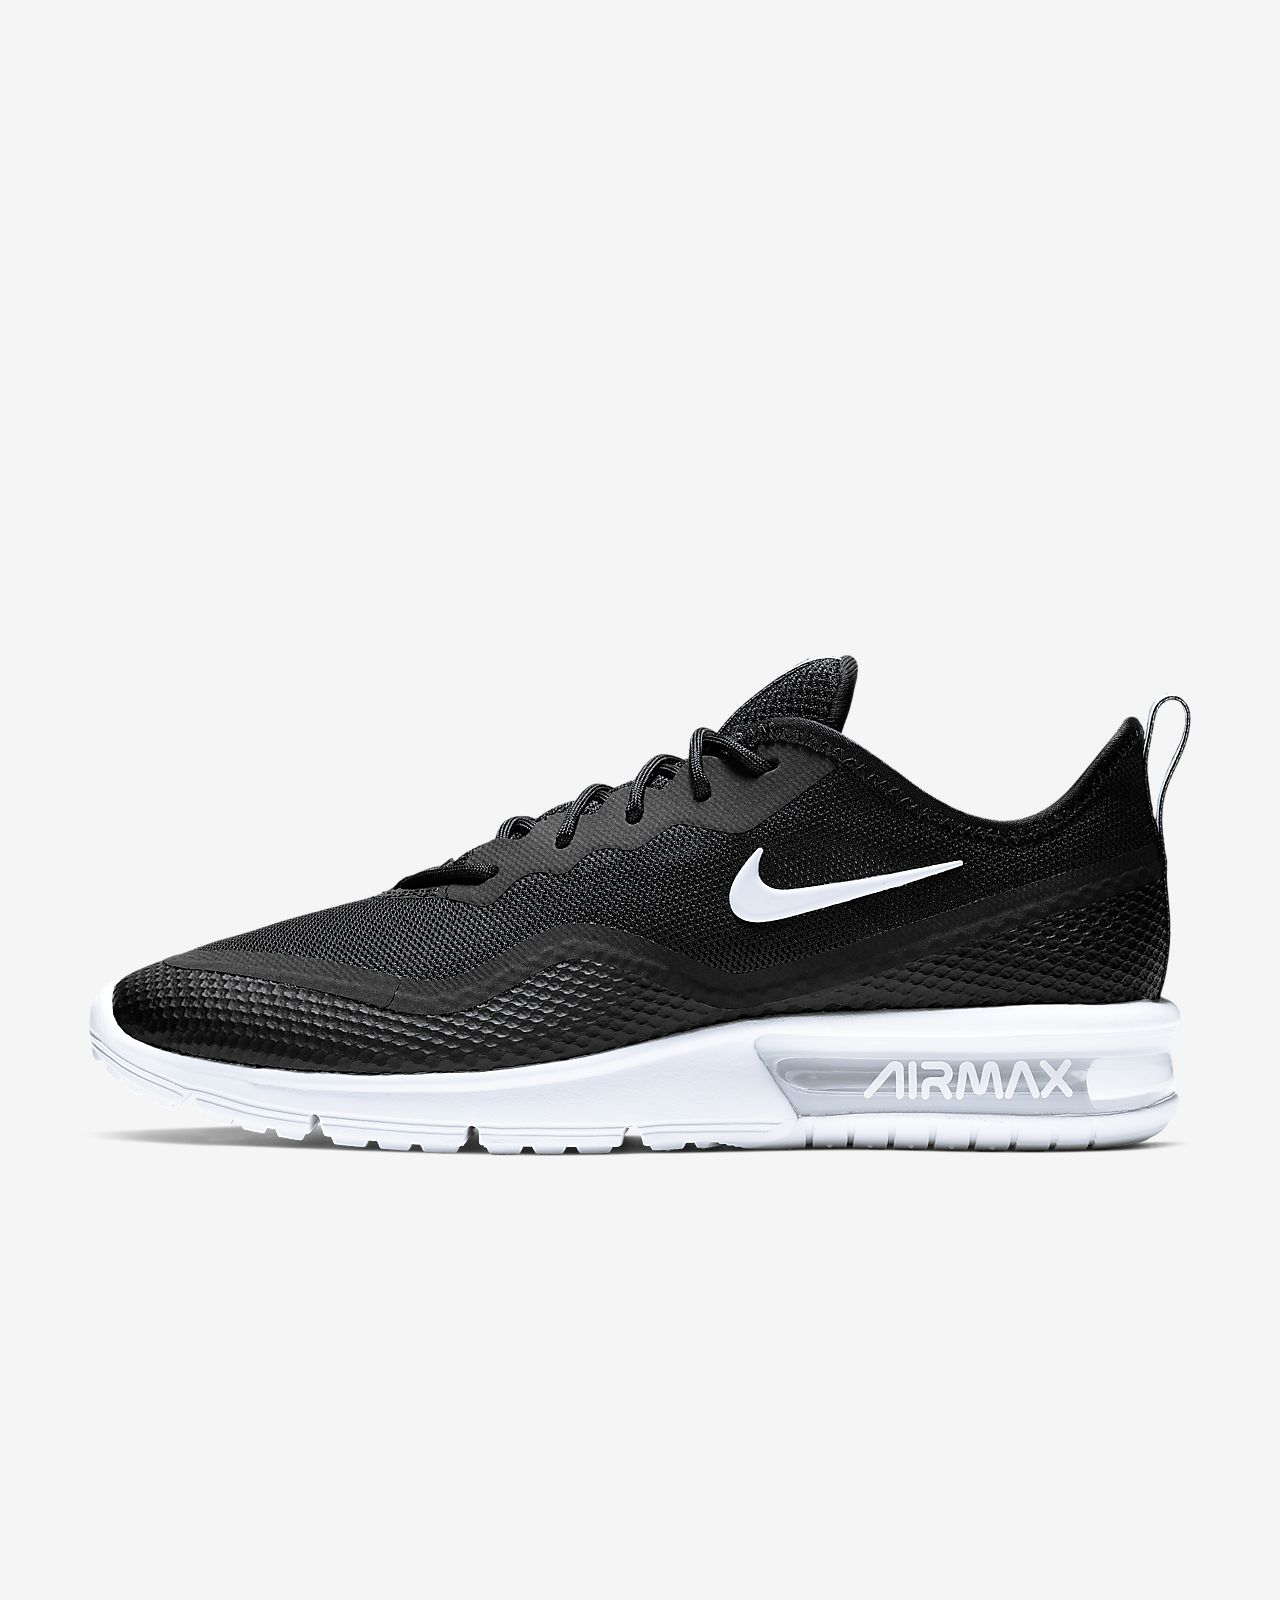 quality design 23897 97bff Men s Running Shoe. Nike Air Max Sequent 4.5